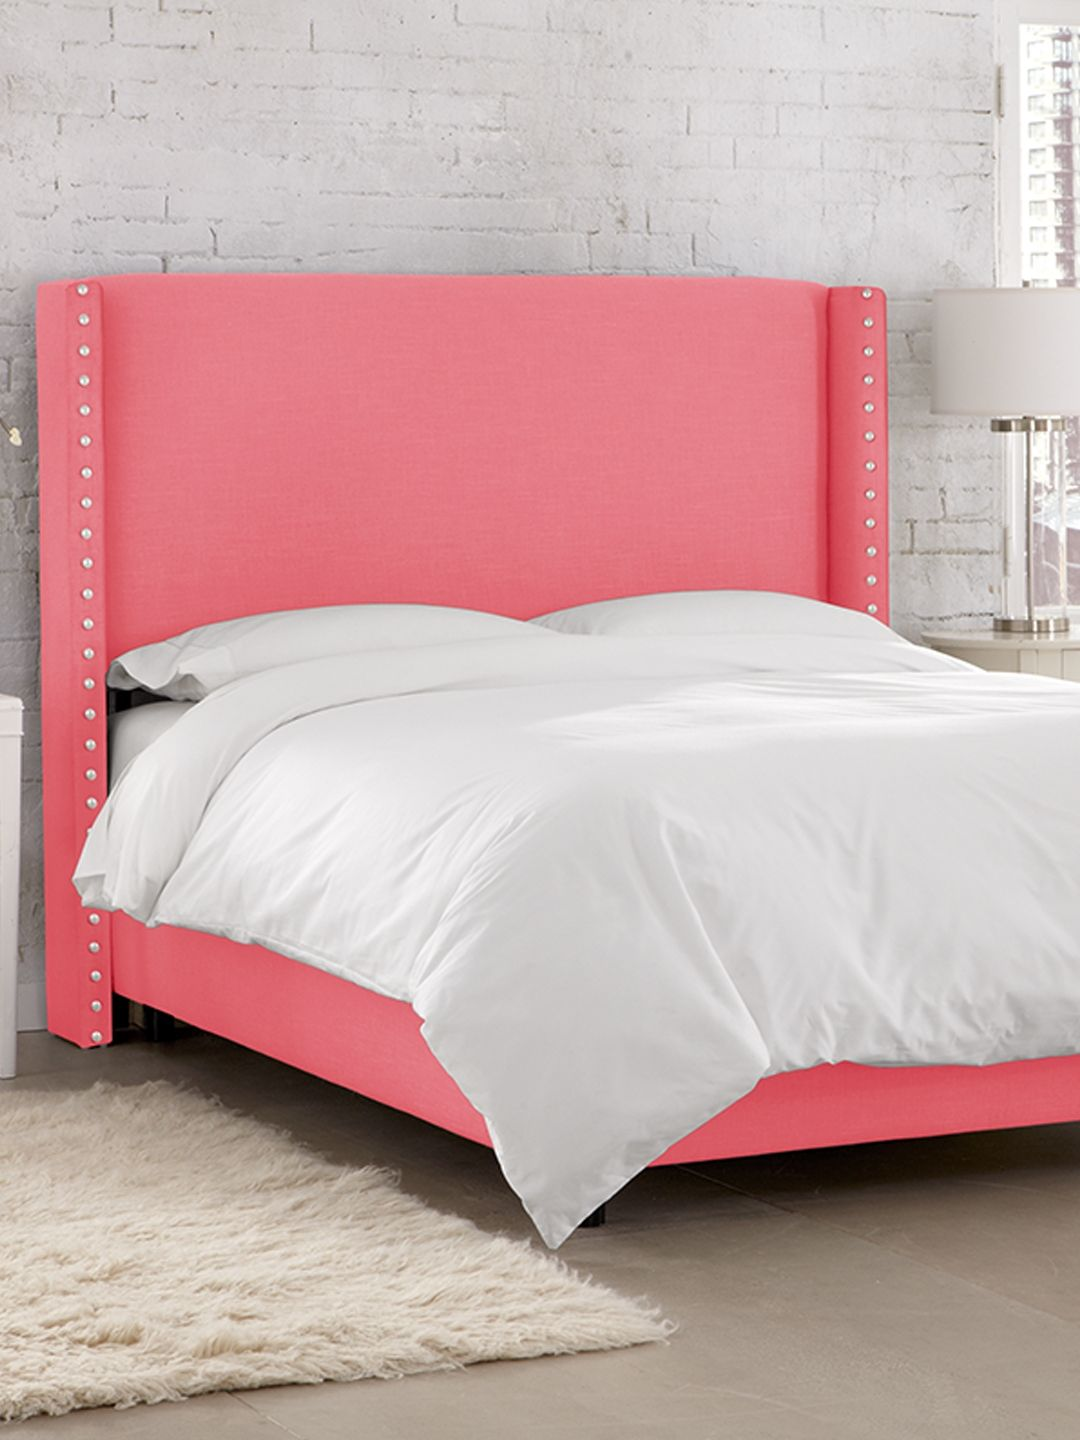 Wingback Bed With Big Nails By Platinum Collection By Sf Designs